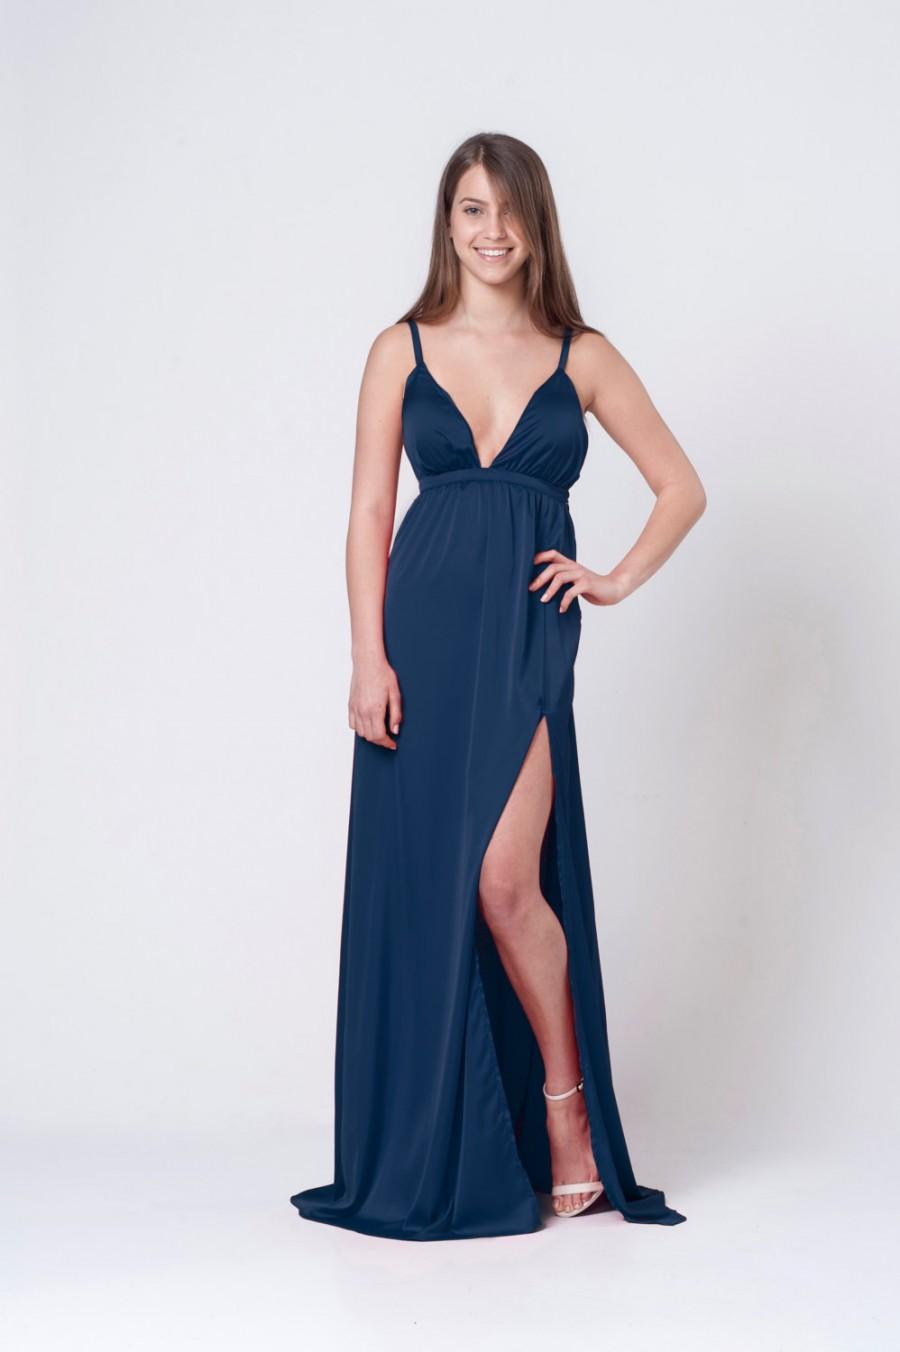 61958bbd24 Blue satin bridesmaid dress - open back maxi dress - Deep front opening  dress - spaghetti Royal blue dress